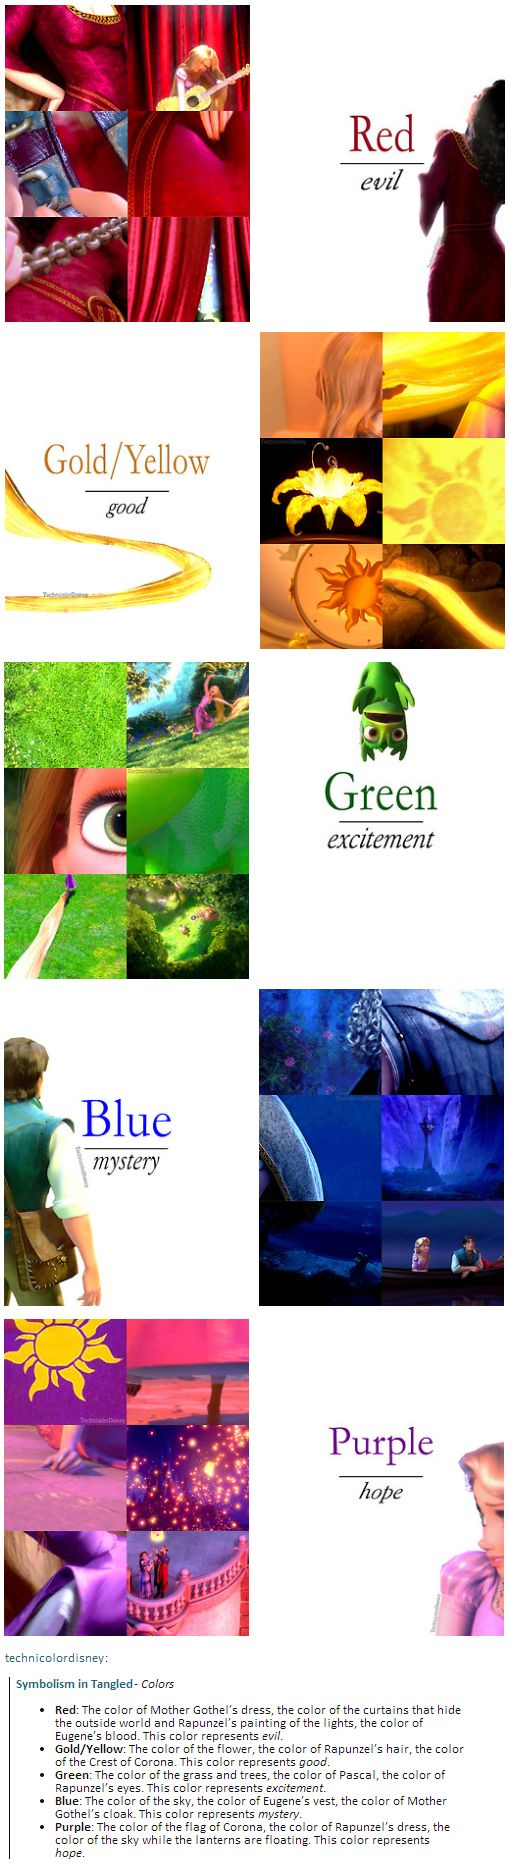 Color symbolism in Tangled